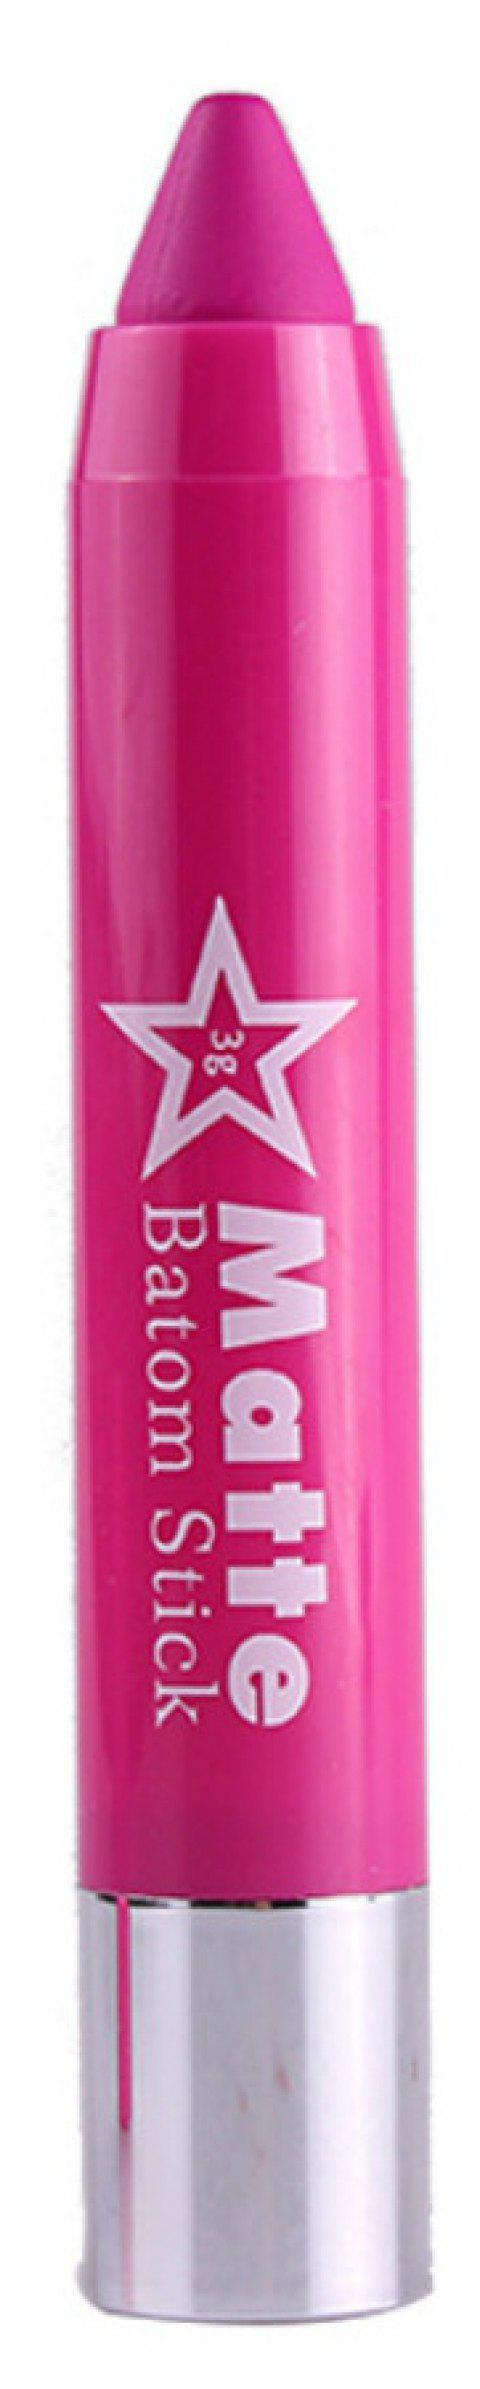 Lip Crayon Matte Stick Makeup Rotate Lipstick - 003